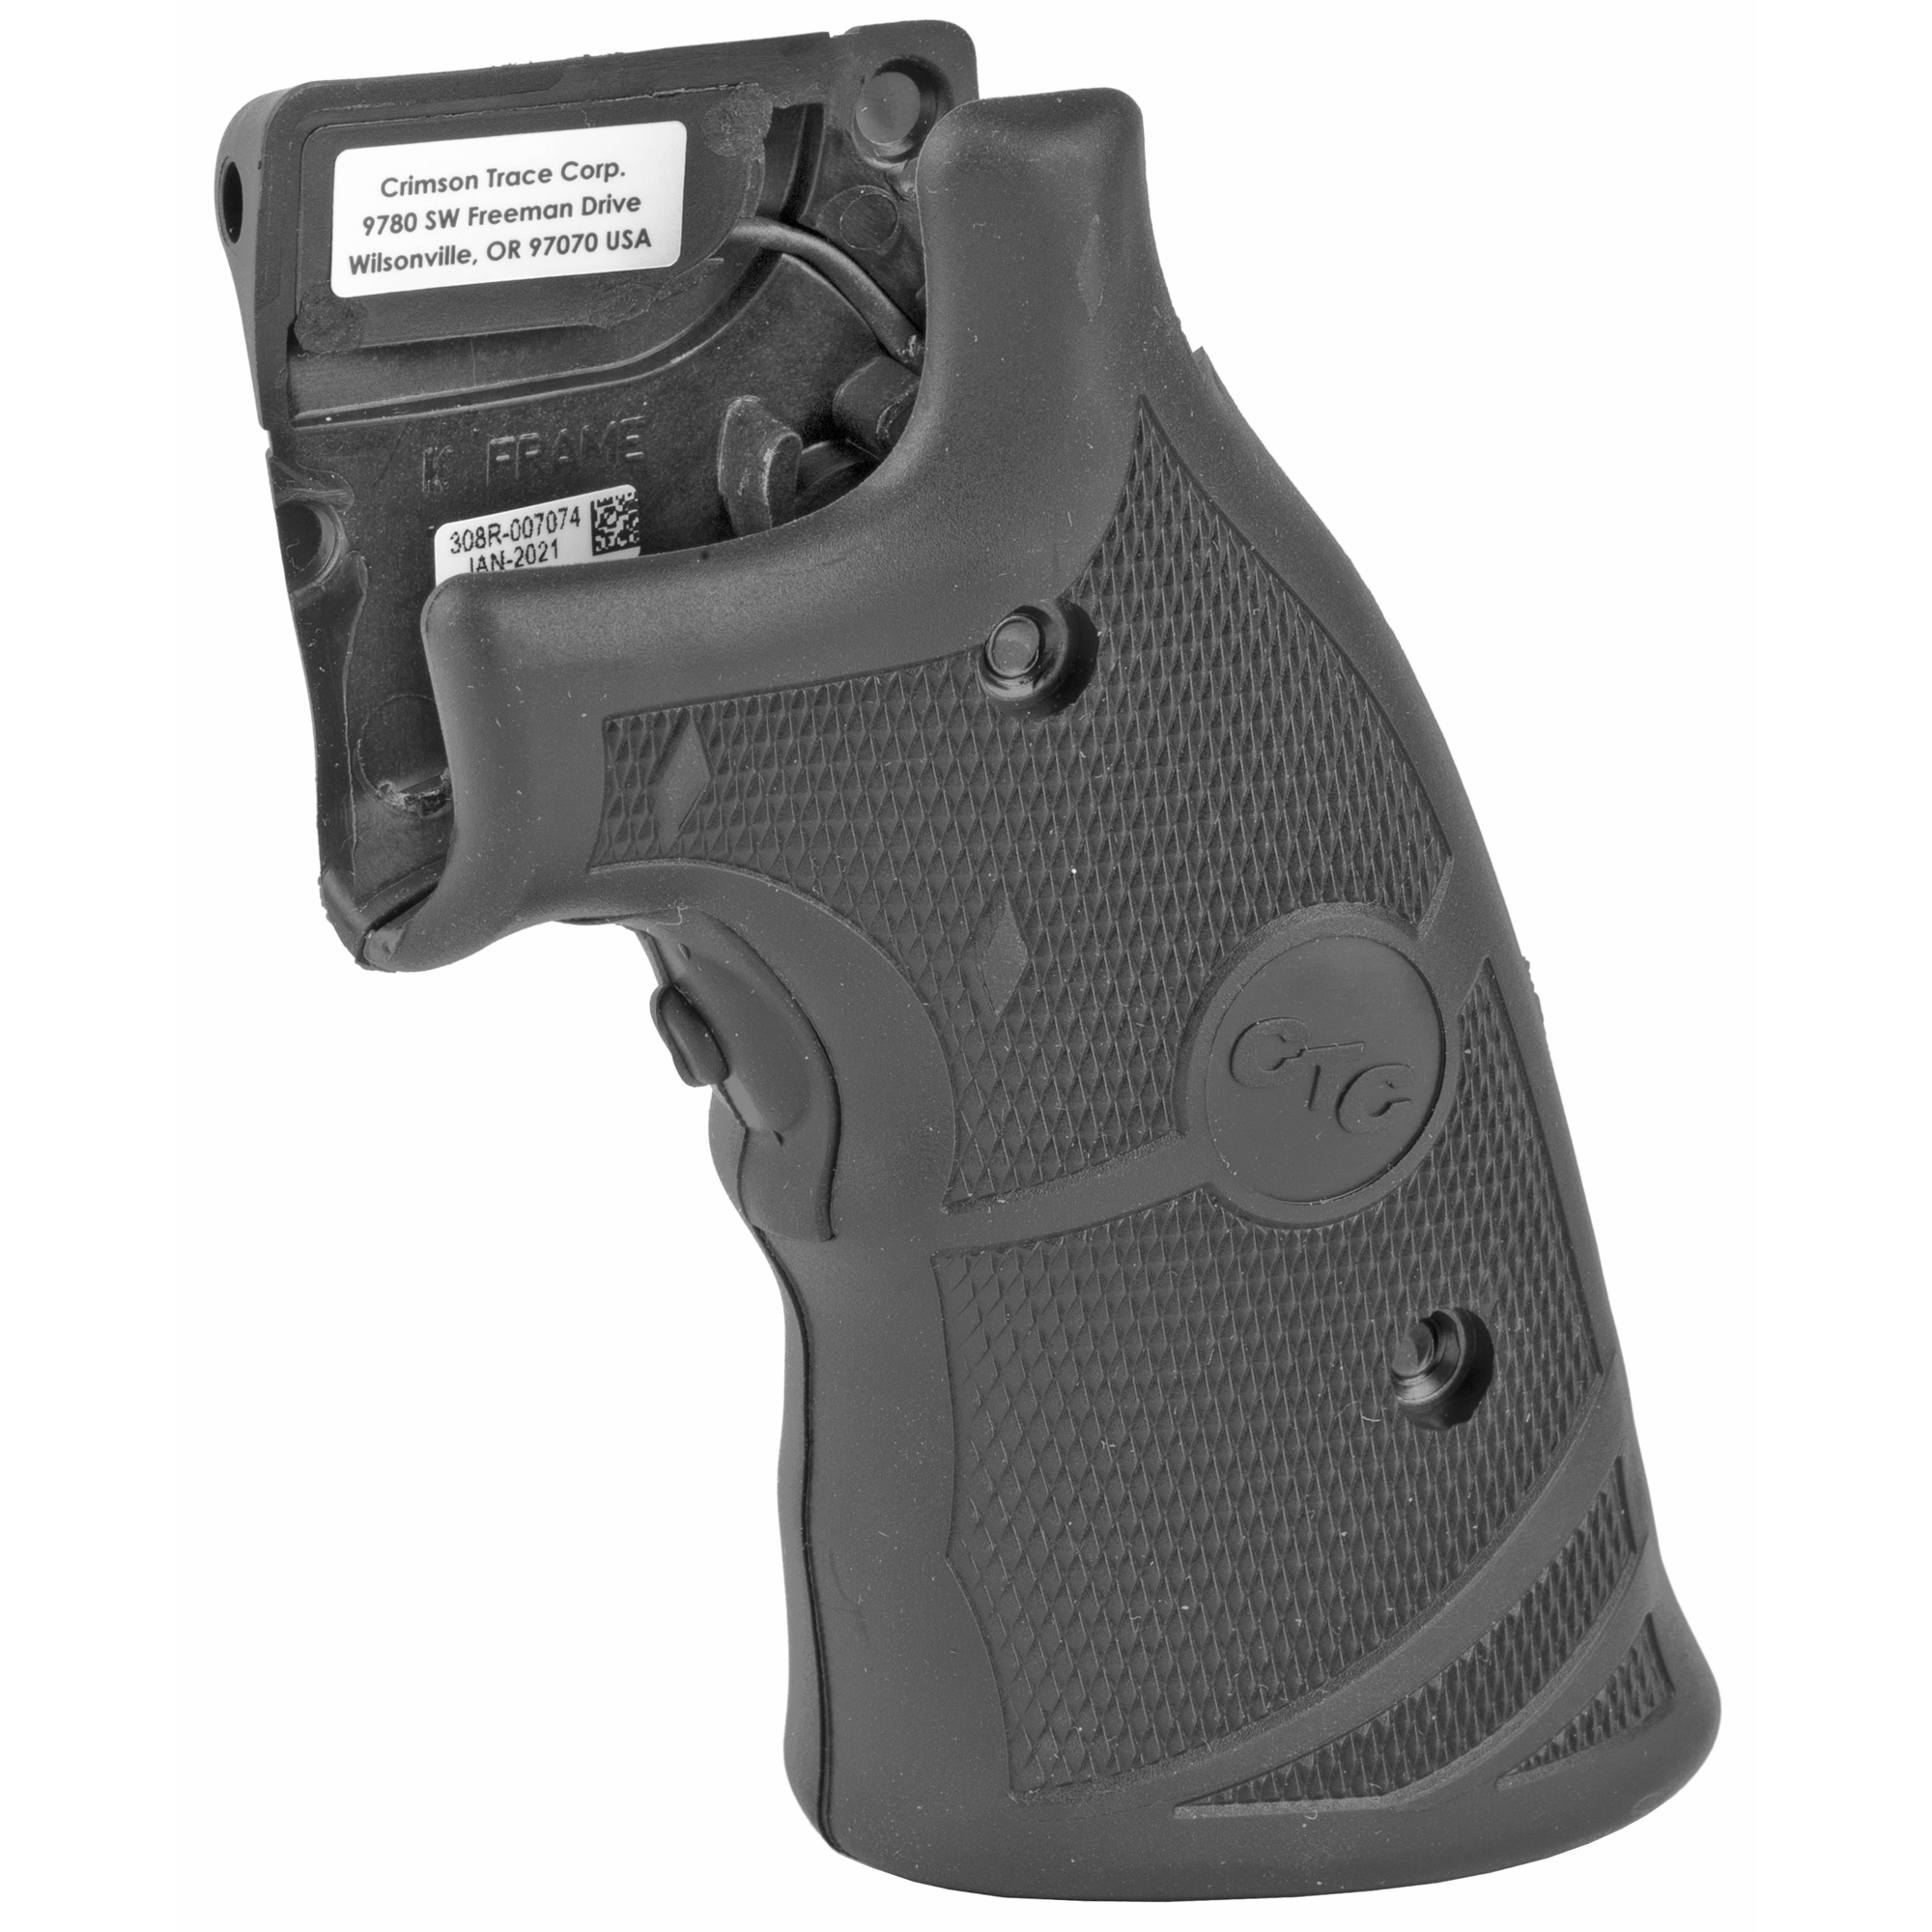 """LG-308 laser sights for Smith & Wesson K & L-Frame revolvers feature a comfortable rubber overmold grip that provides ideal comfort and security for large caliber revolvers. The laser activation switch is located in the front of the revolver' Lasergrips(R)"""" making activation """"instinctive"""" when you assume a normal firing grip on the revolver."""